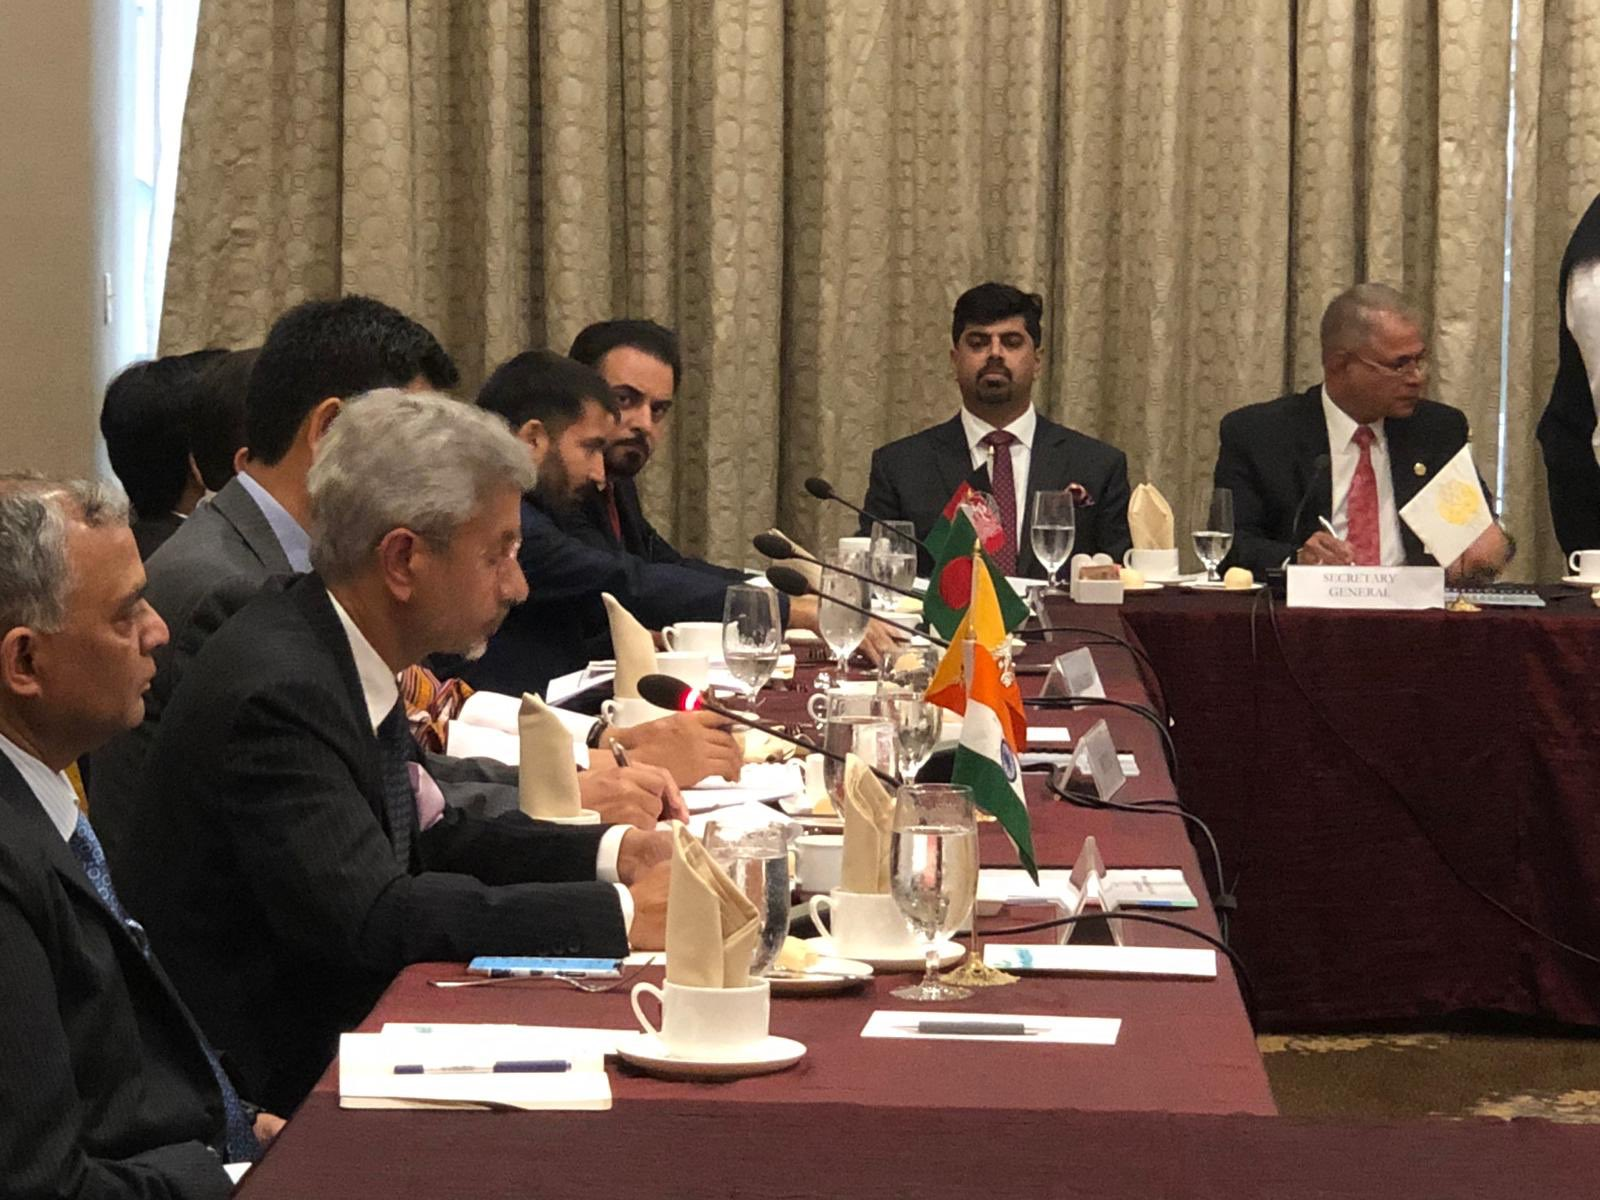 S Jaishankar addressing the SAARC Council of Foreign Ministers in New York on Thursday. Photo courtesy: Twitter/@DrSJaishankar